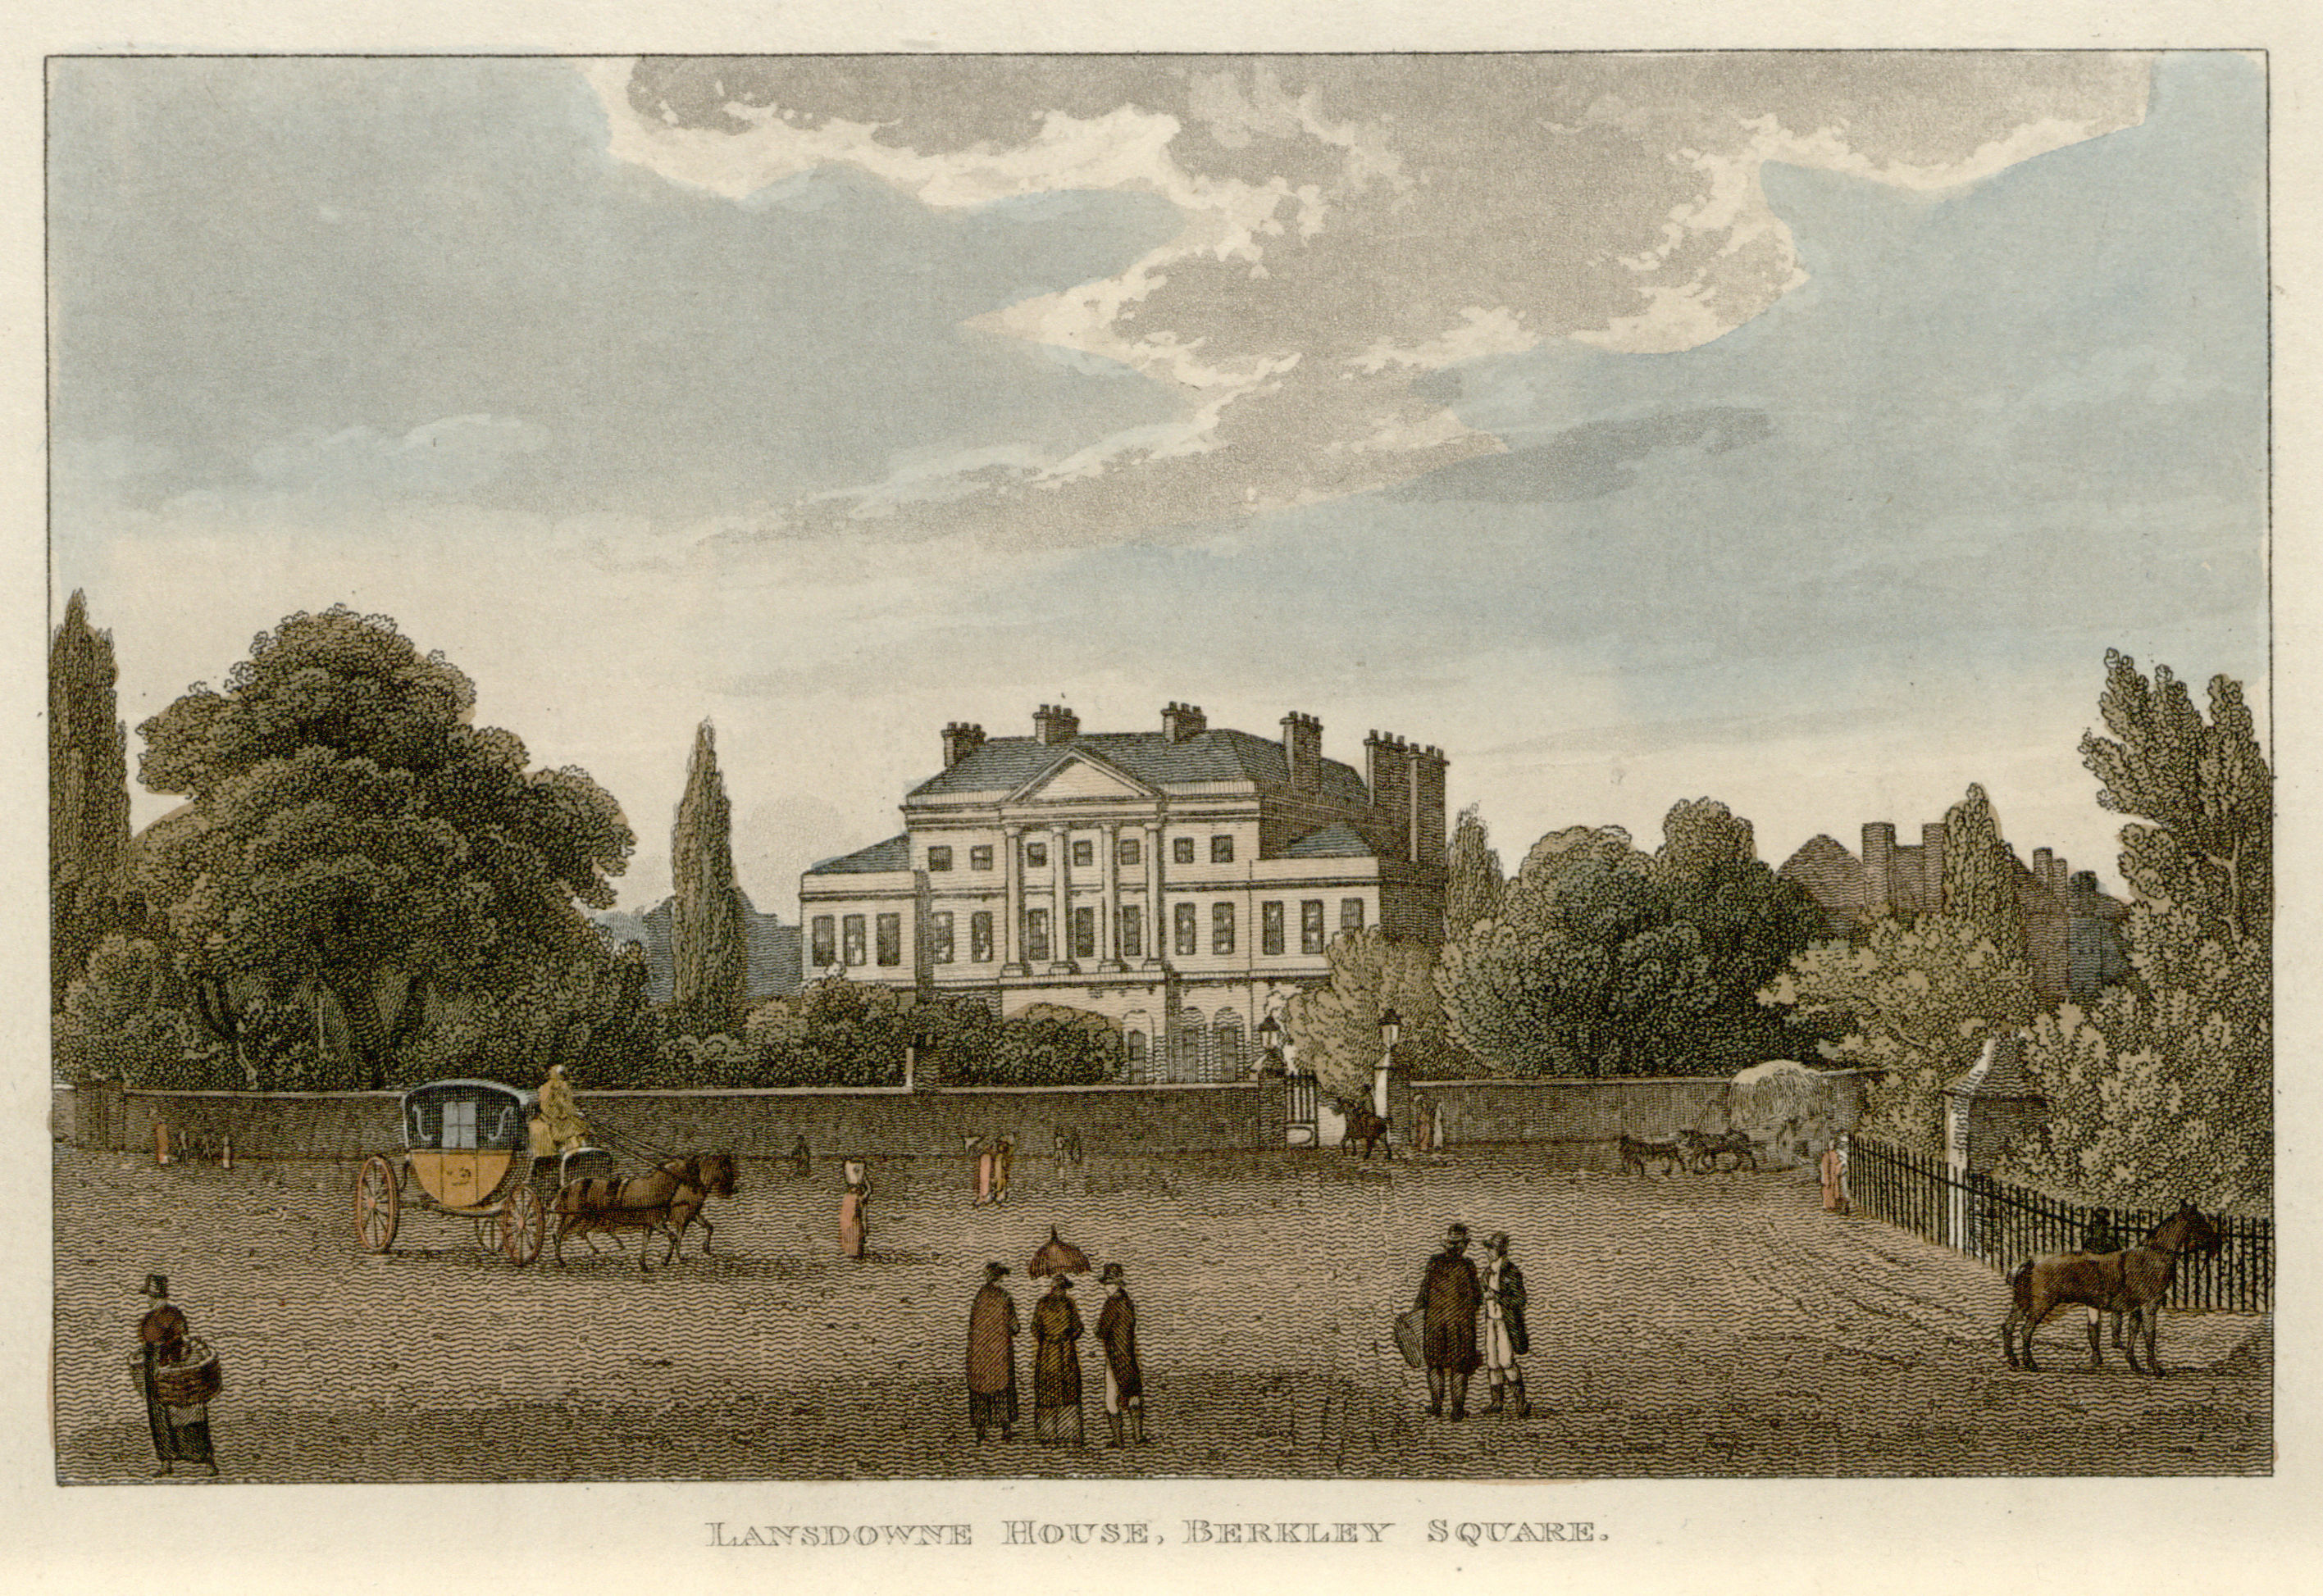 18 - Papworth - Lansdowne House, Berkley Square